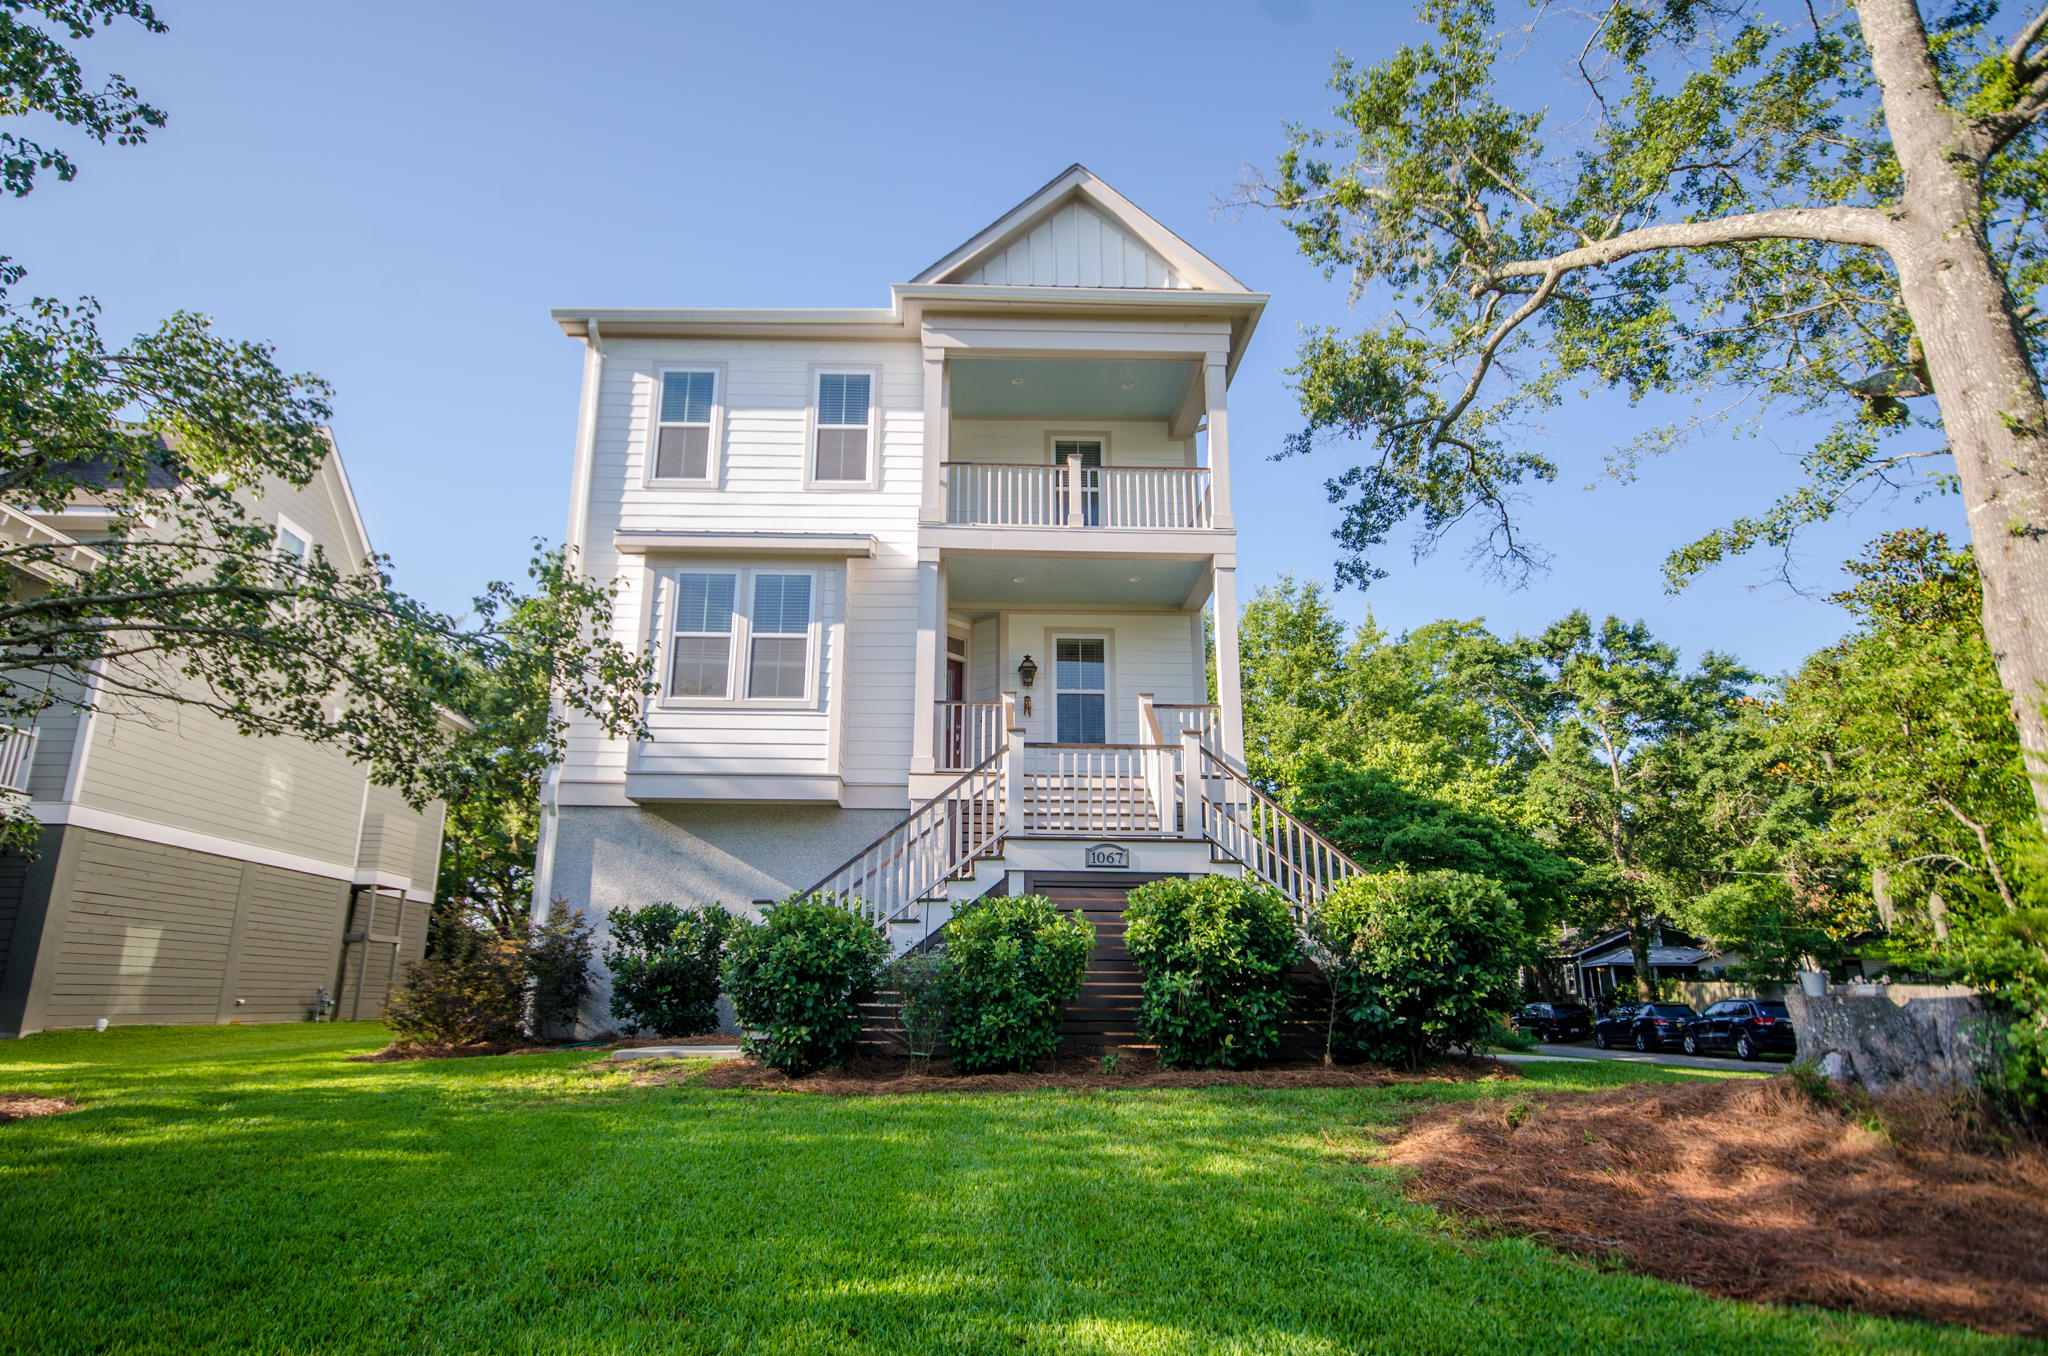 Park Circle Homes for Sale, North Charleston SC